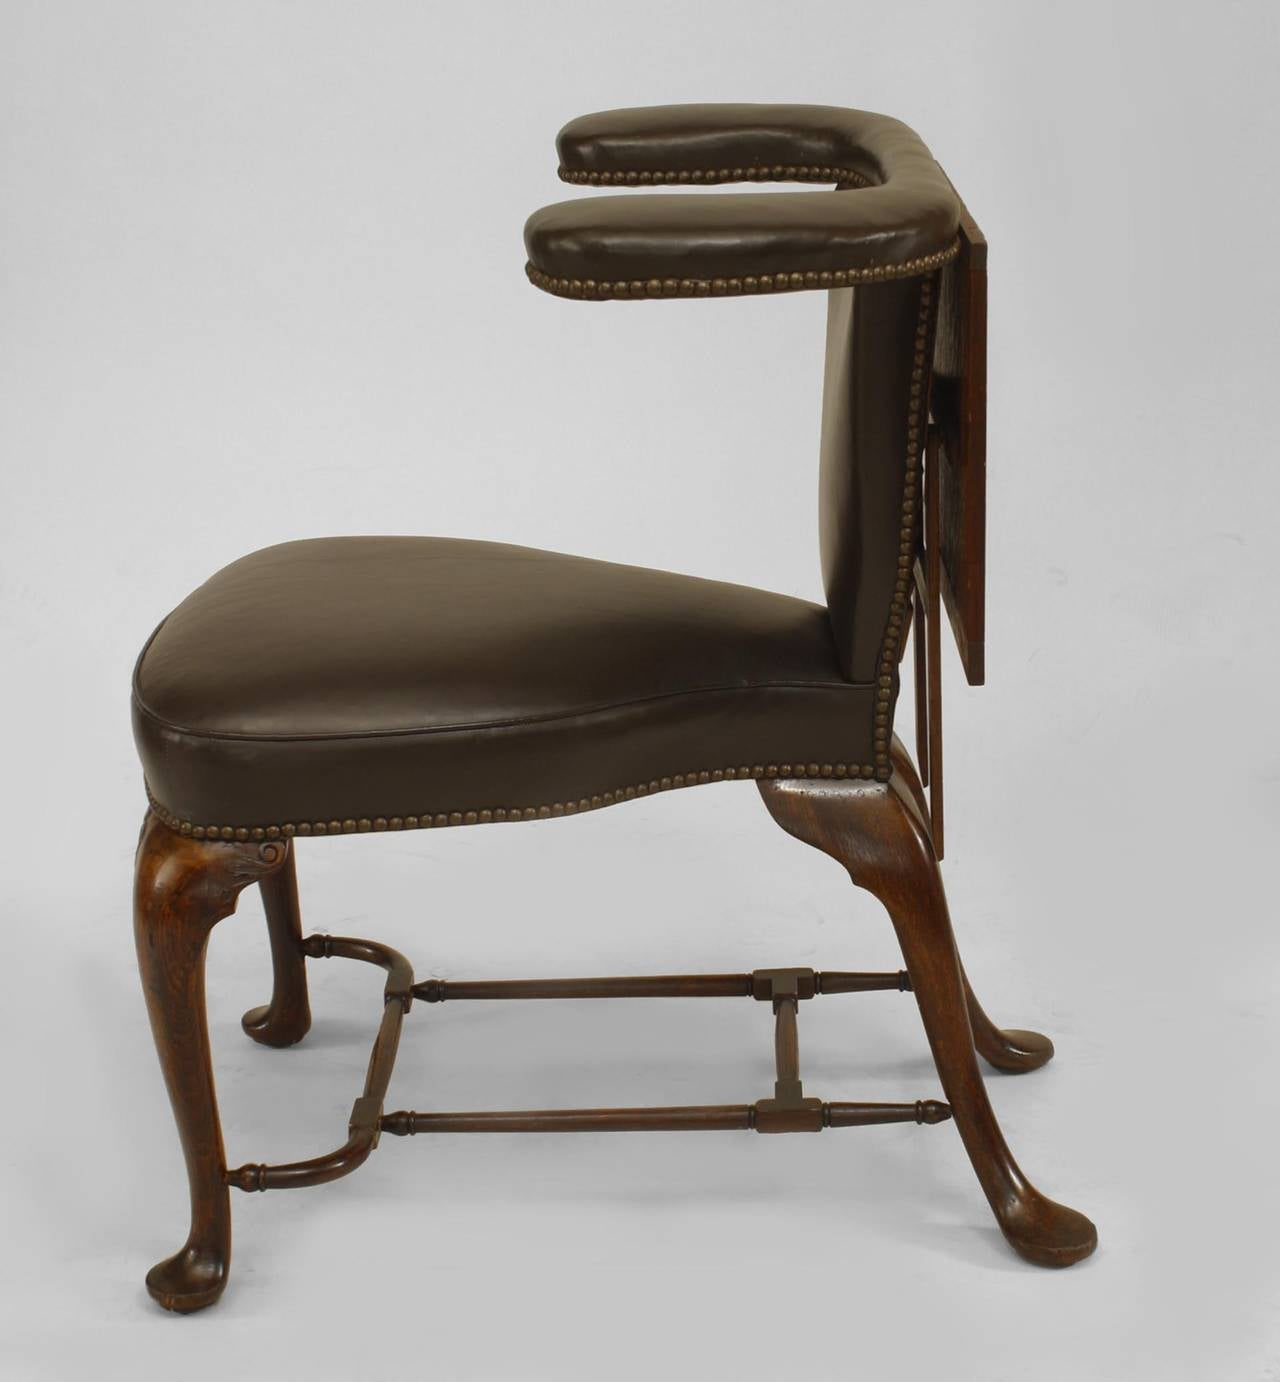 Beau 19th Century English Queen Anne Style Leather, Upholstered Reading Chair In  Good Condition For Sale